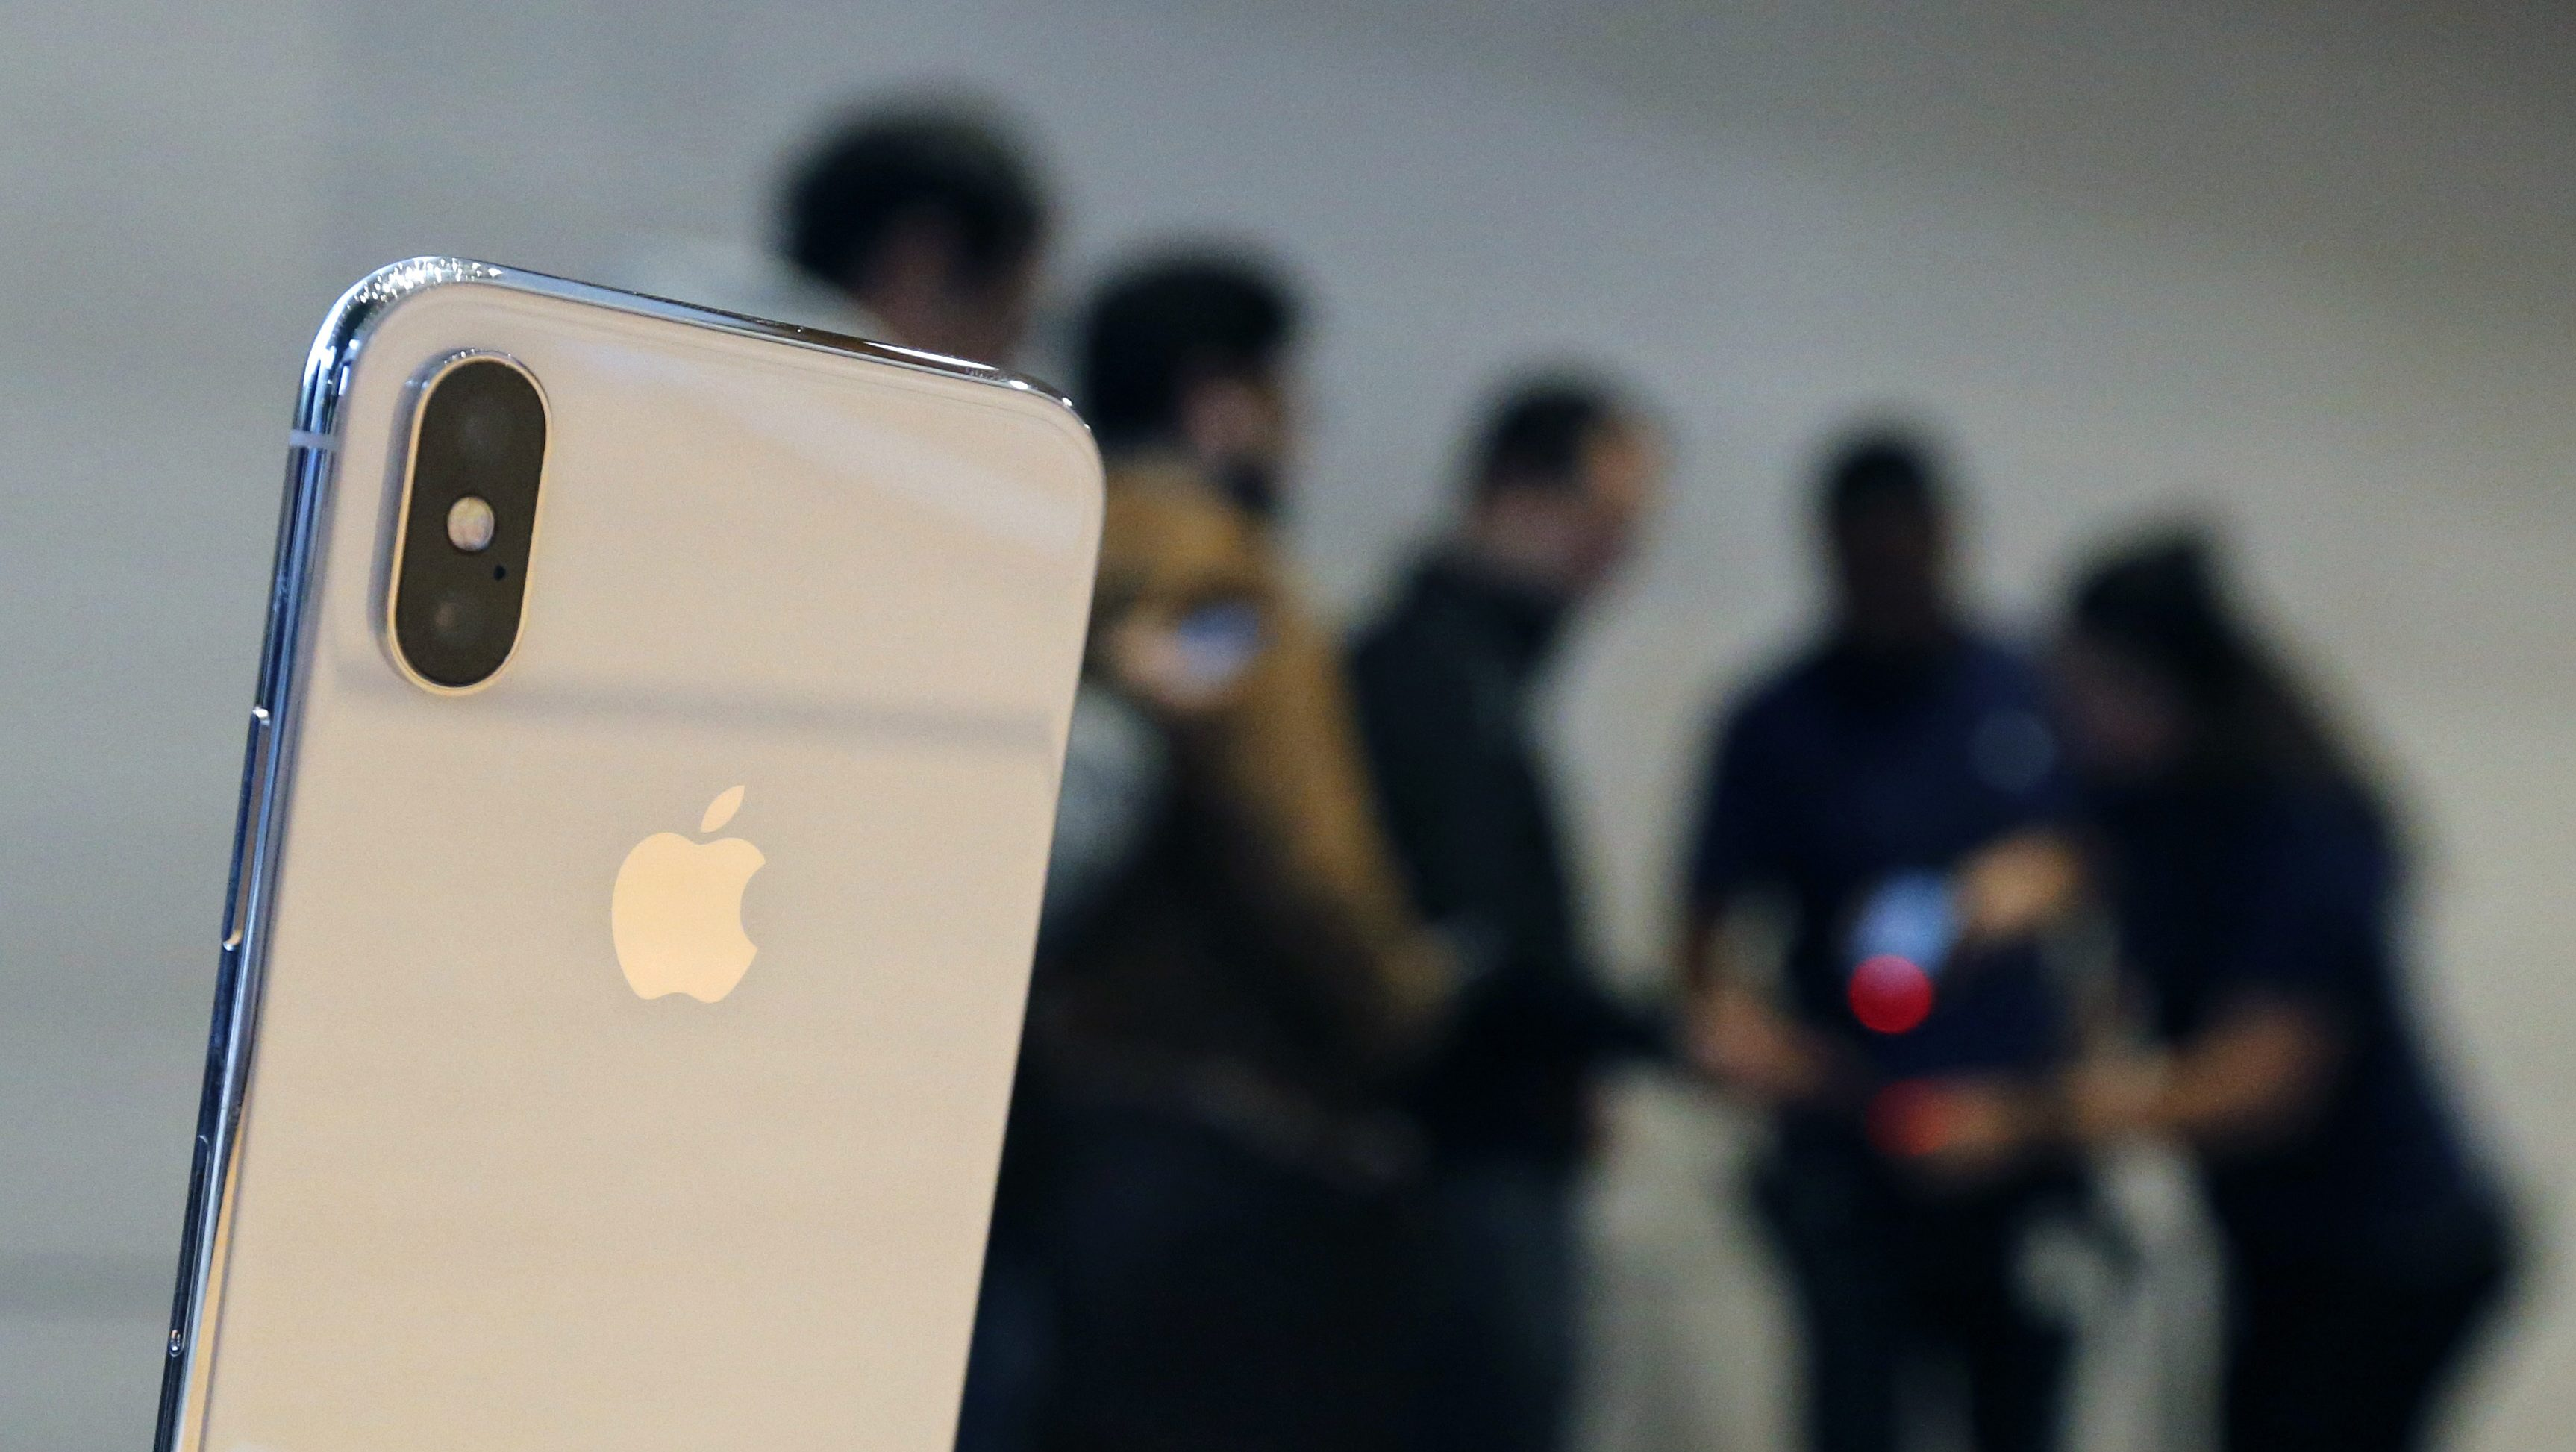 The new Apple iPhone X sits on display as consumers line up to buy the phone at the new Apple Michigan Avenue store along the Chicago River Friday, Nov. 3, 2017, in Chicago. (AP Photo/Charles Rex Arbogast)